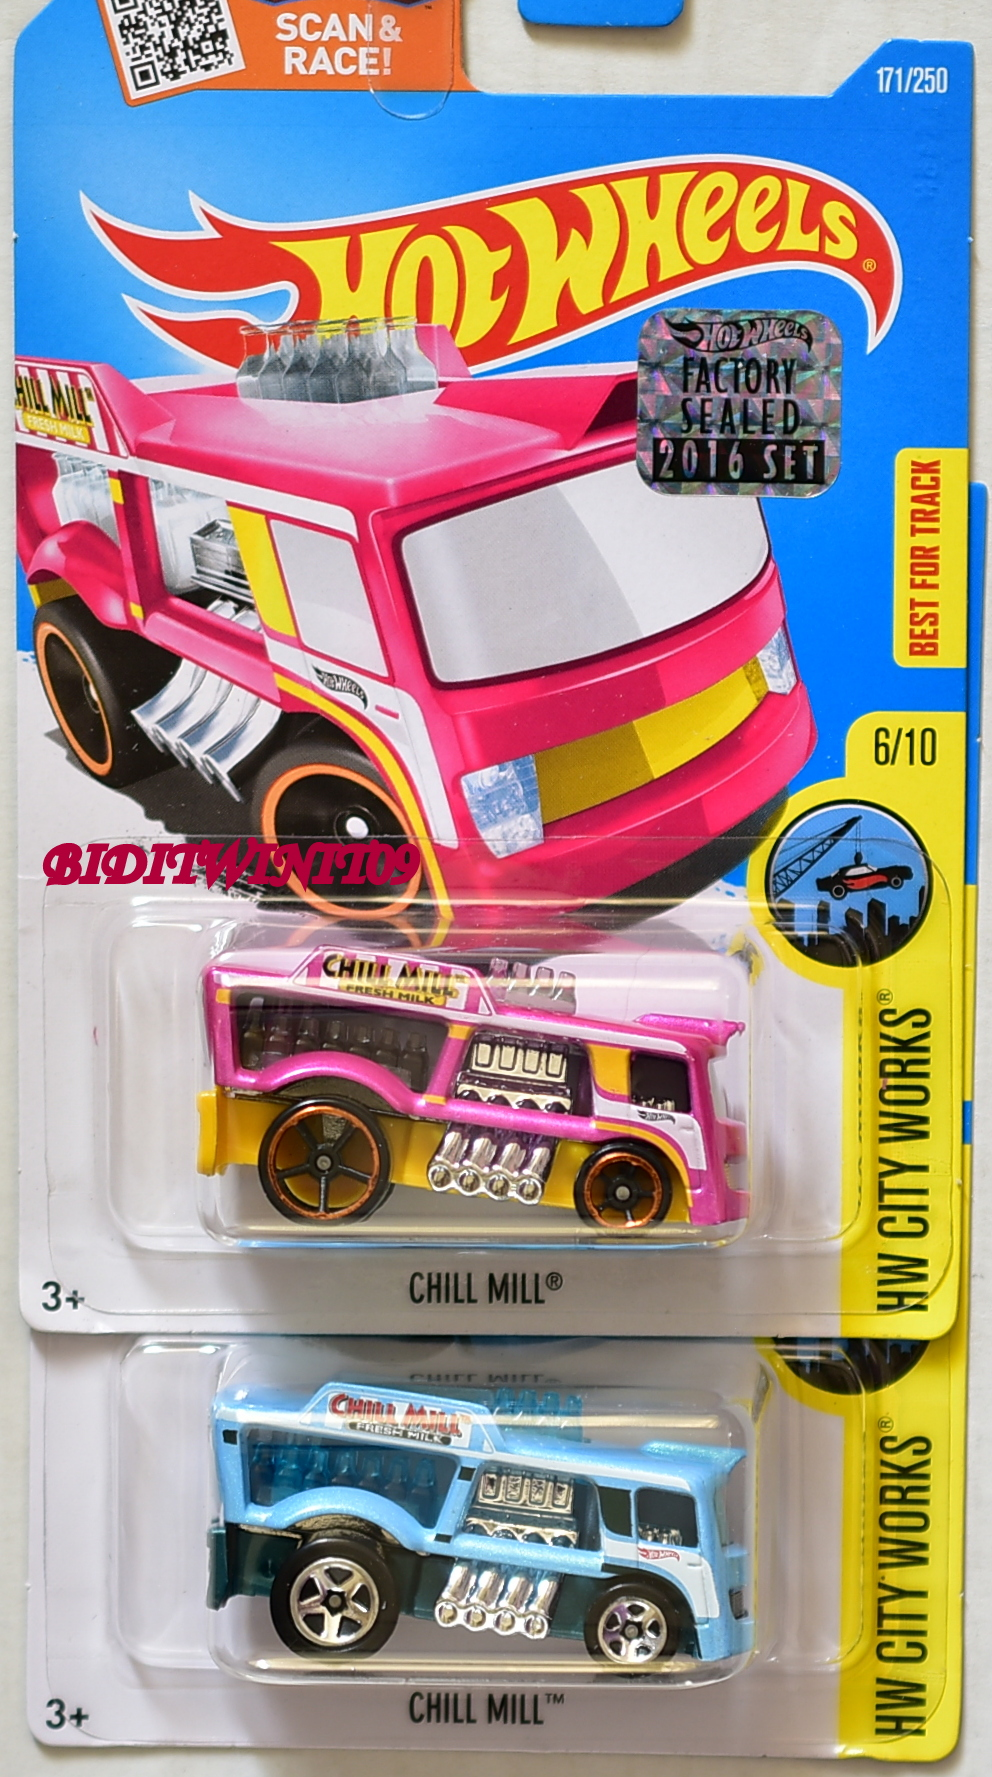 HOT WHEELS 2016 HW CITY WORKS CHILL MILL VARIATION FACTORY SEALED E+